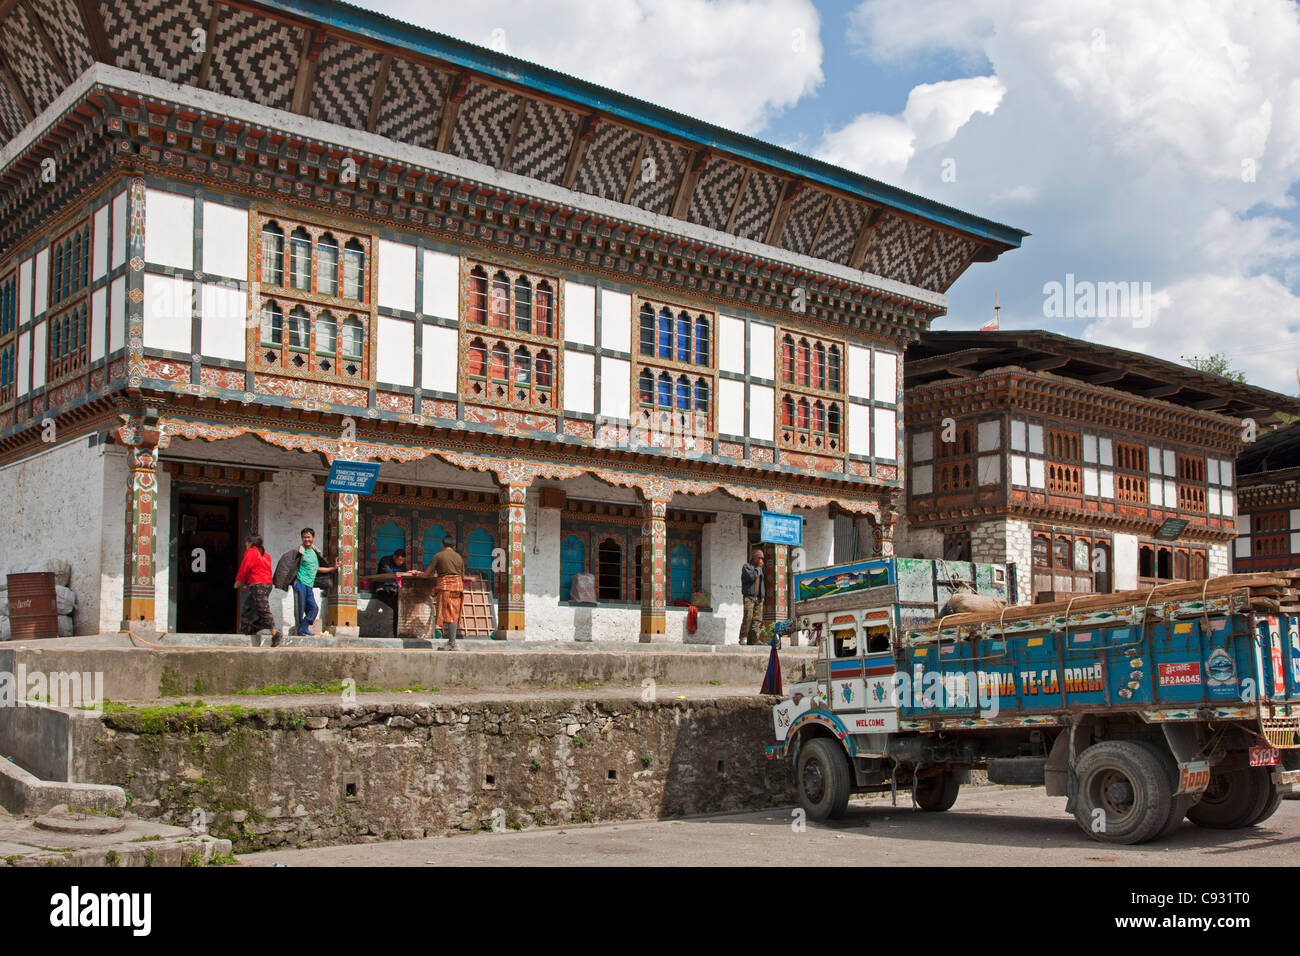 The attractive small shopping centre of Trashi Yangtse built in the traditional Bhutanese architectural style. - Stock Image